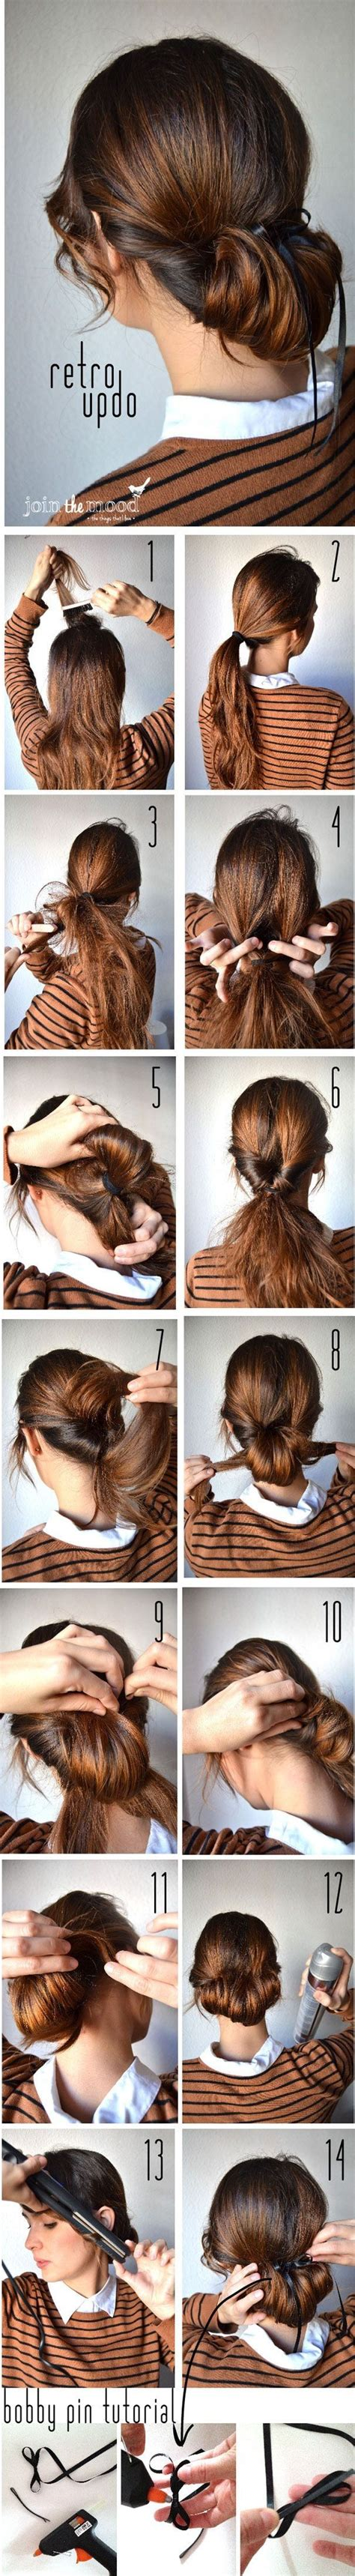 hairstyles for long hair step by step 12 trendy low bun updo hairstyles tutorials easy cute